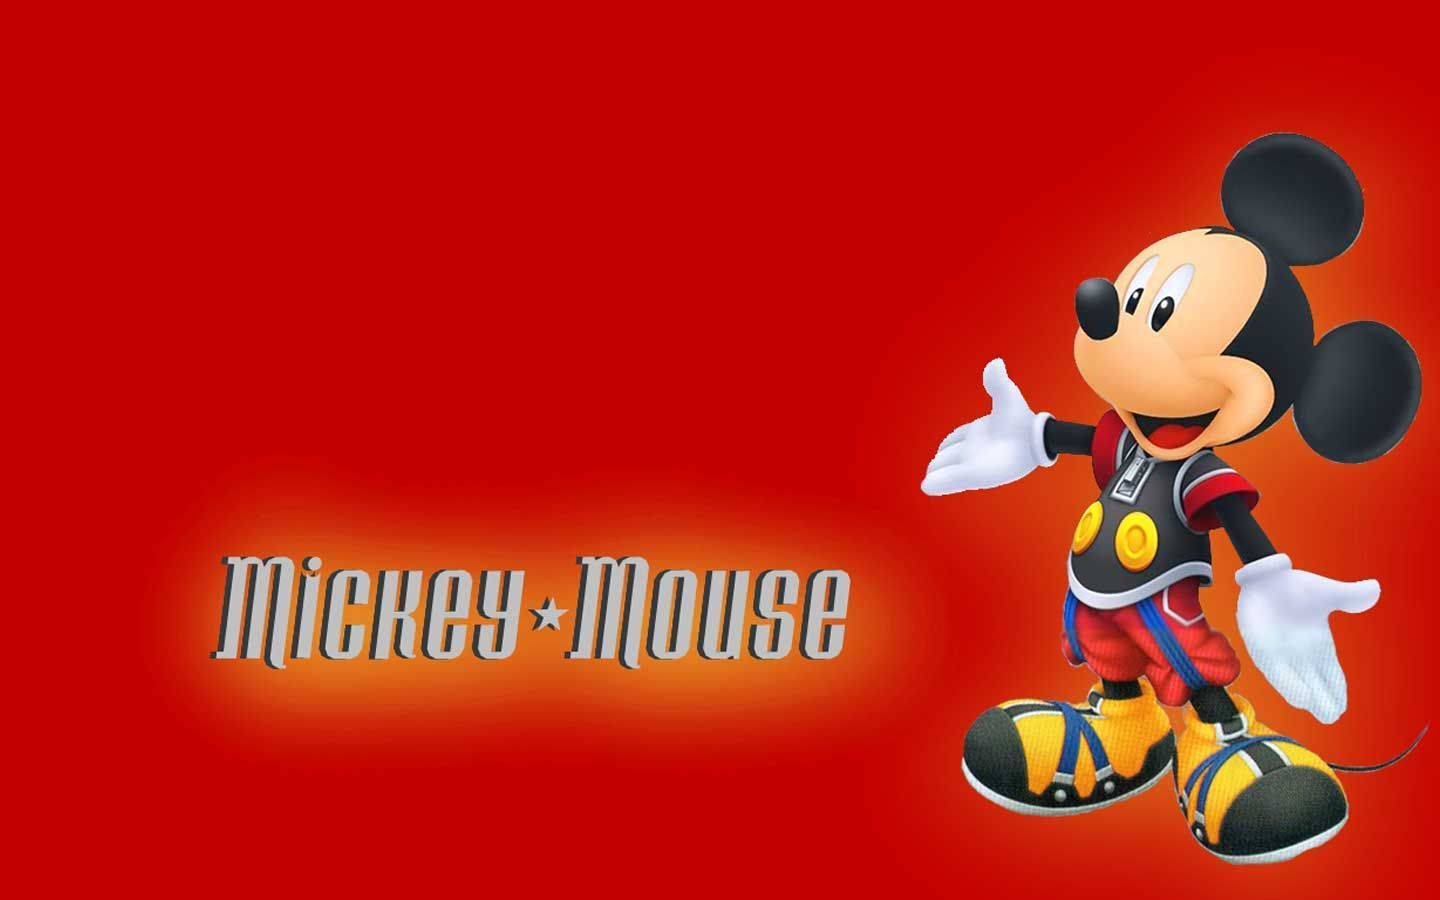 mickey mouse carpet wallpapers hdwallpapers | wallpapers | pinterest